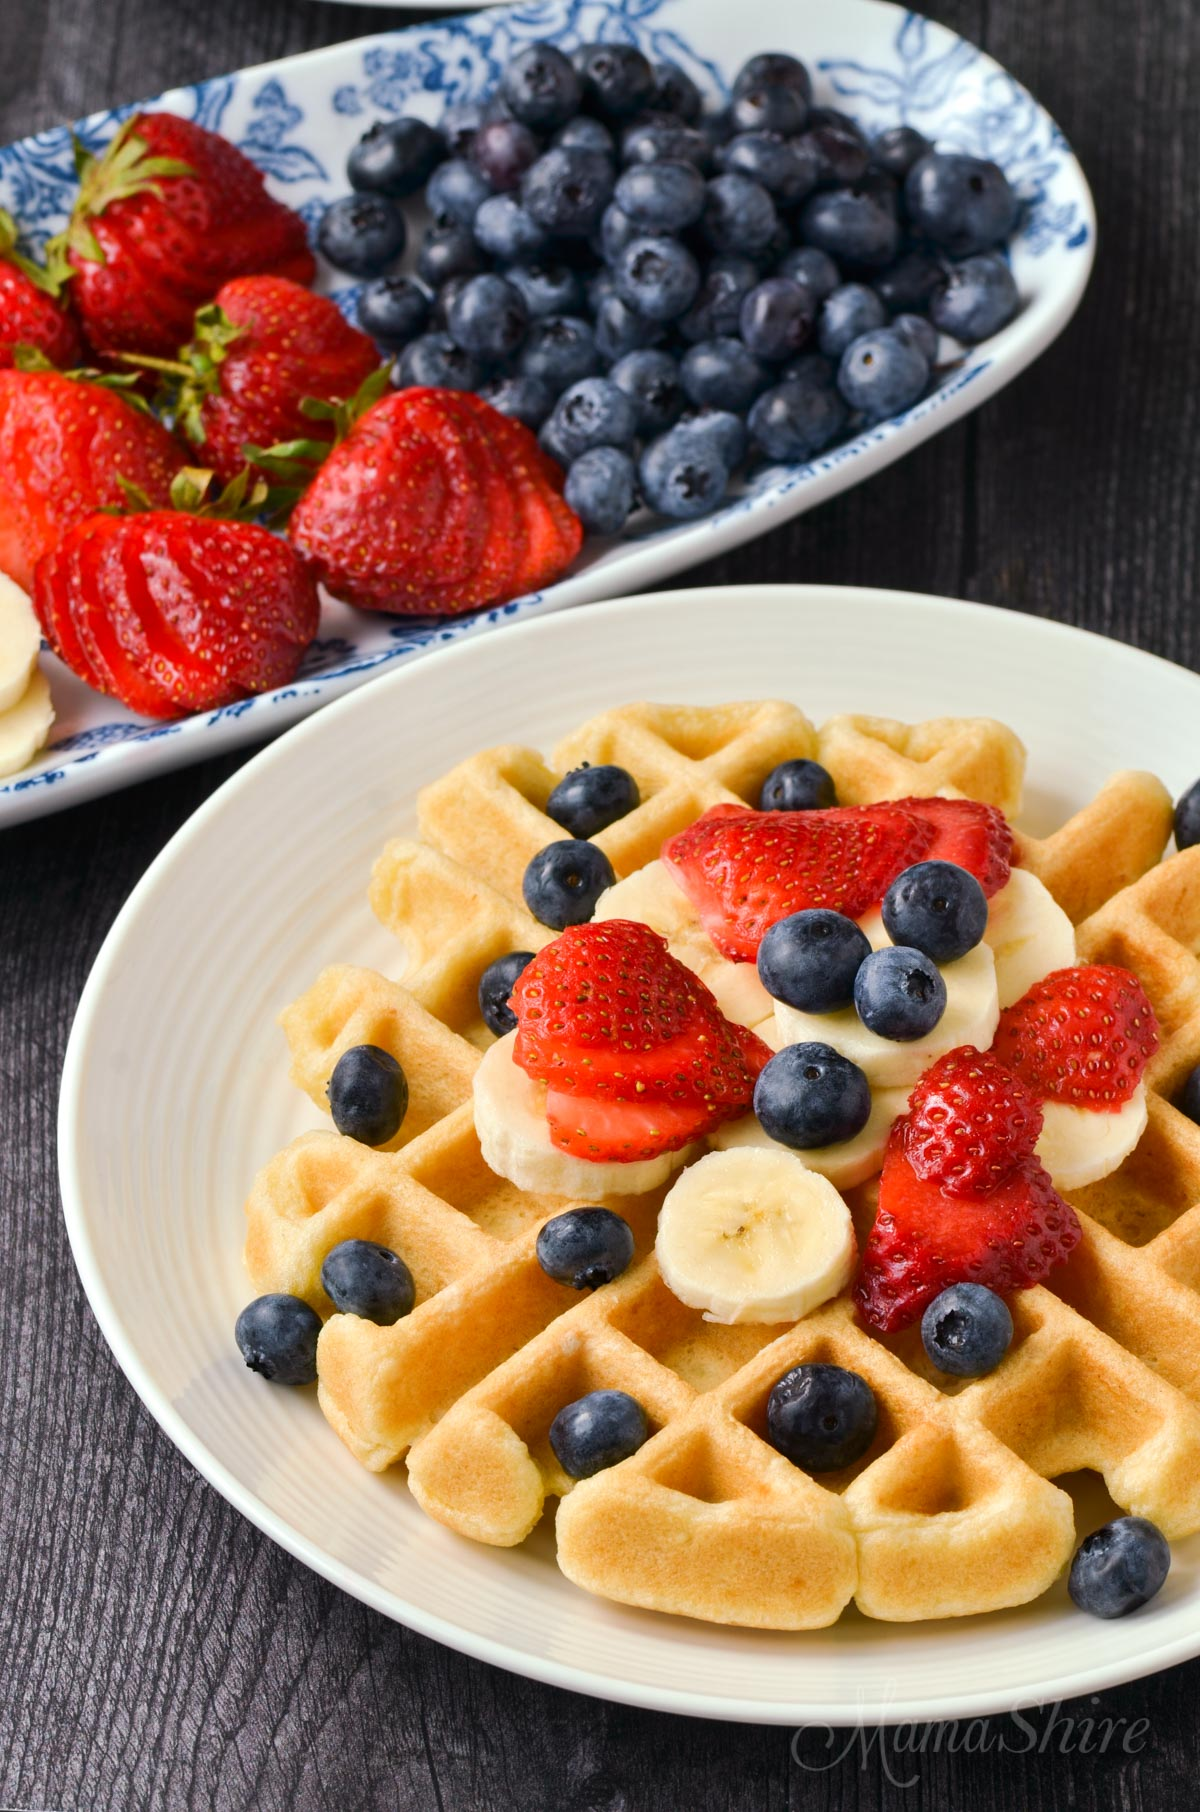 Gluten-Free Belgian waffles served with stawberries, bananas, and blueberries.